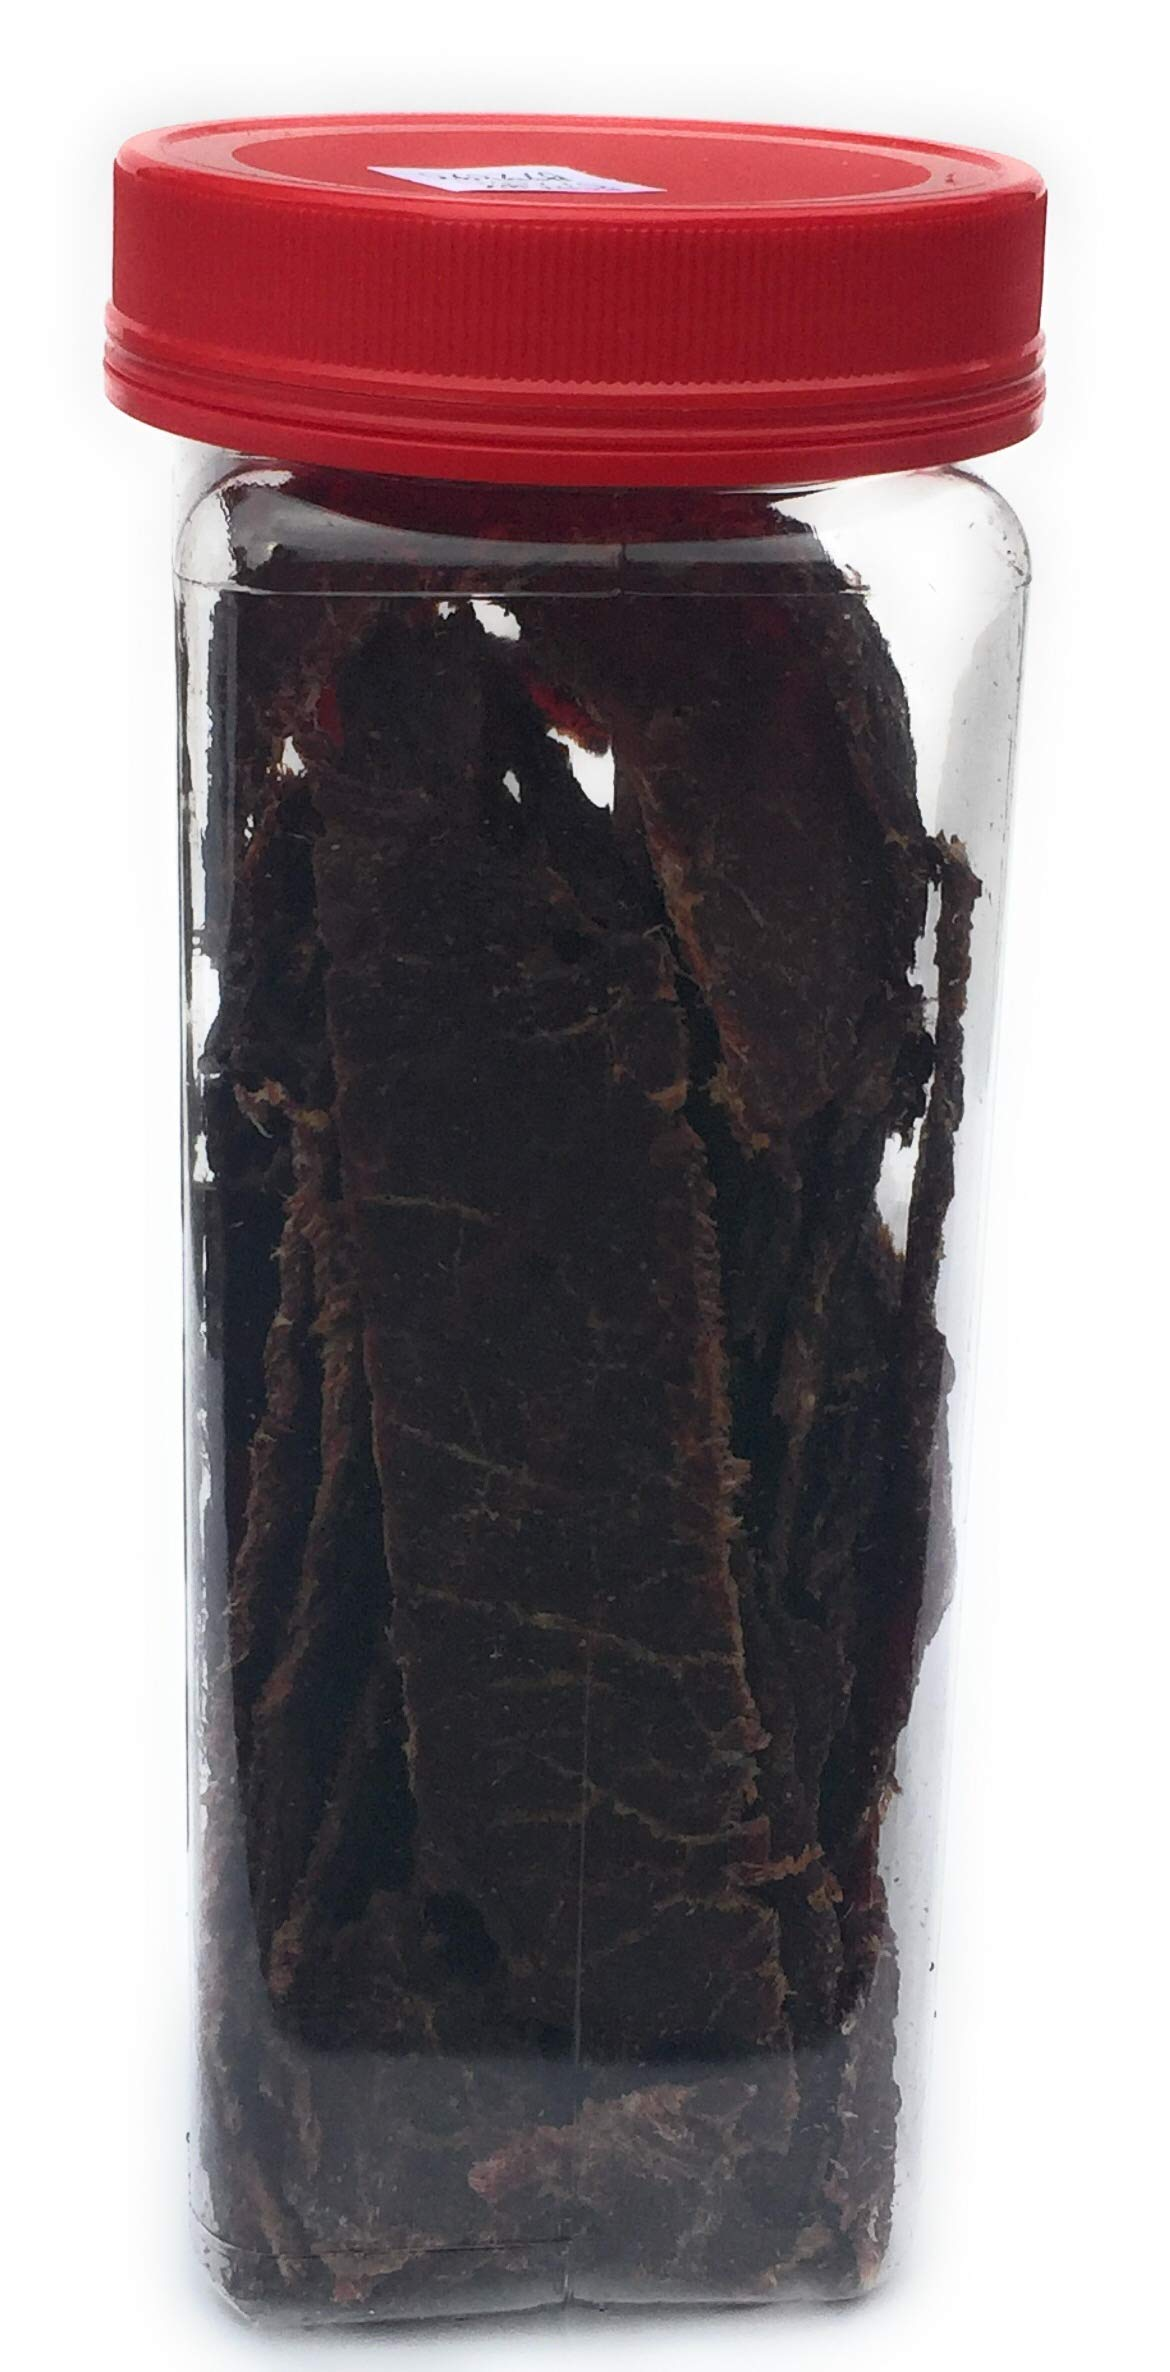 HARD TIMES 8oz Jar Original Real Beef Jerky Sliced Hand Trimmed Dry Tough Jerky For HardTimes by hard times (Image #5)